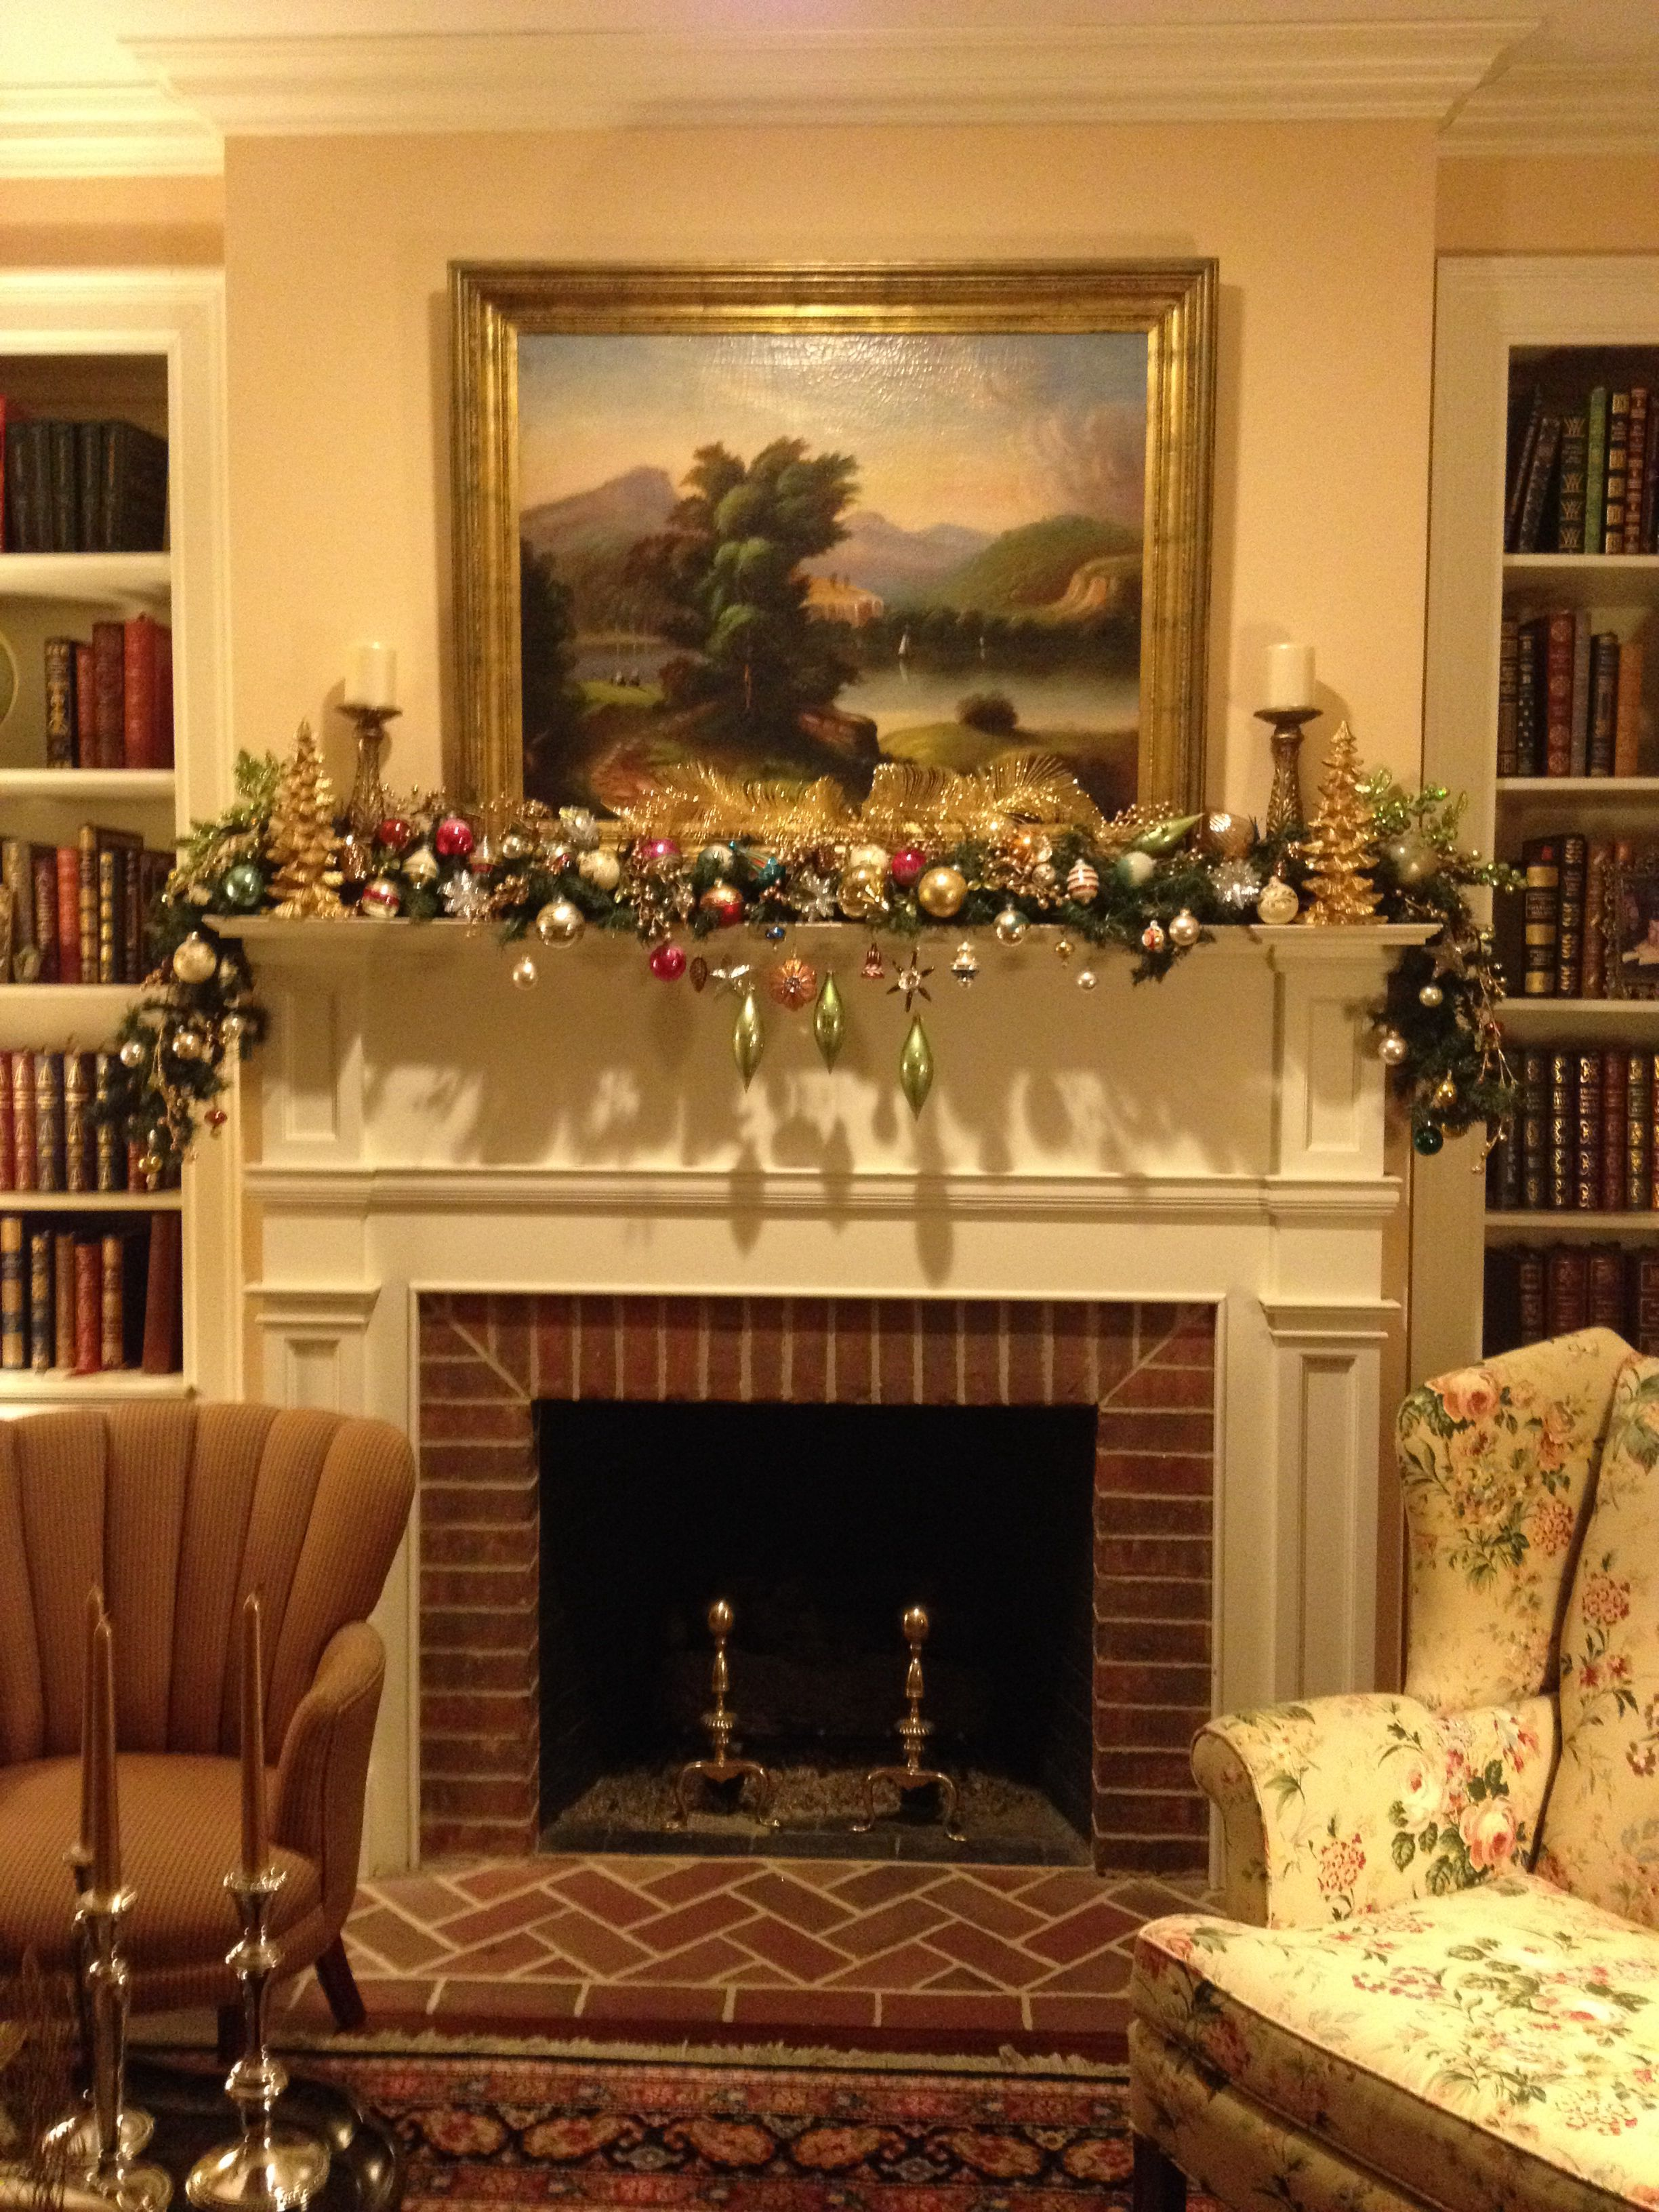 Vintage Christmas fireplace mantle decoration with antique ...